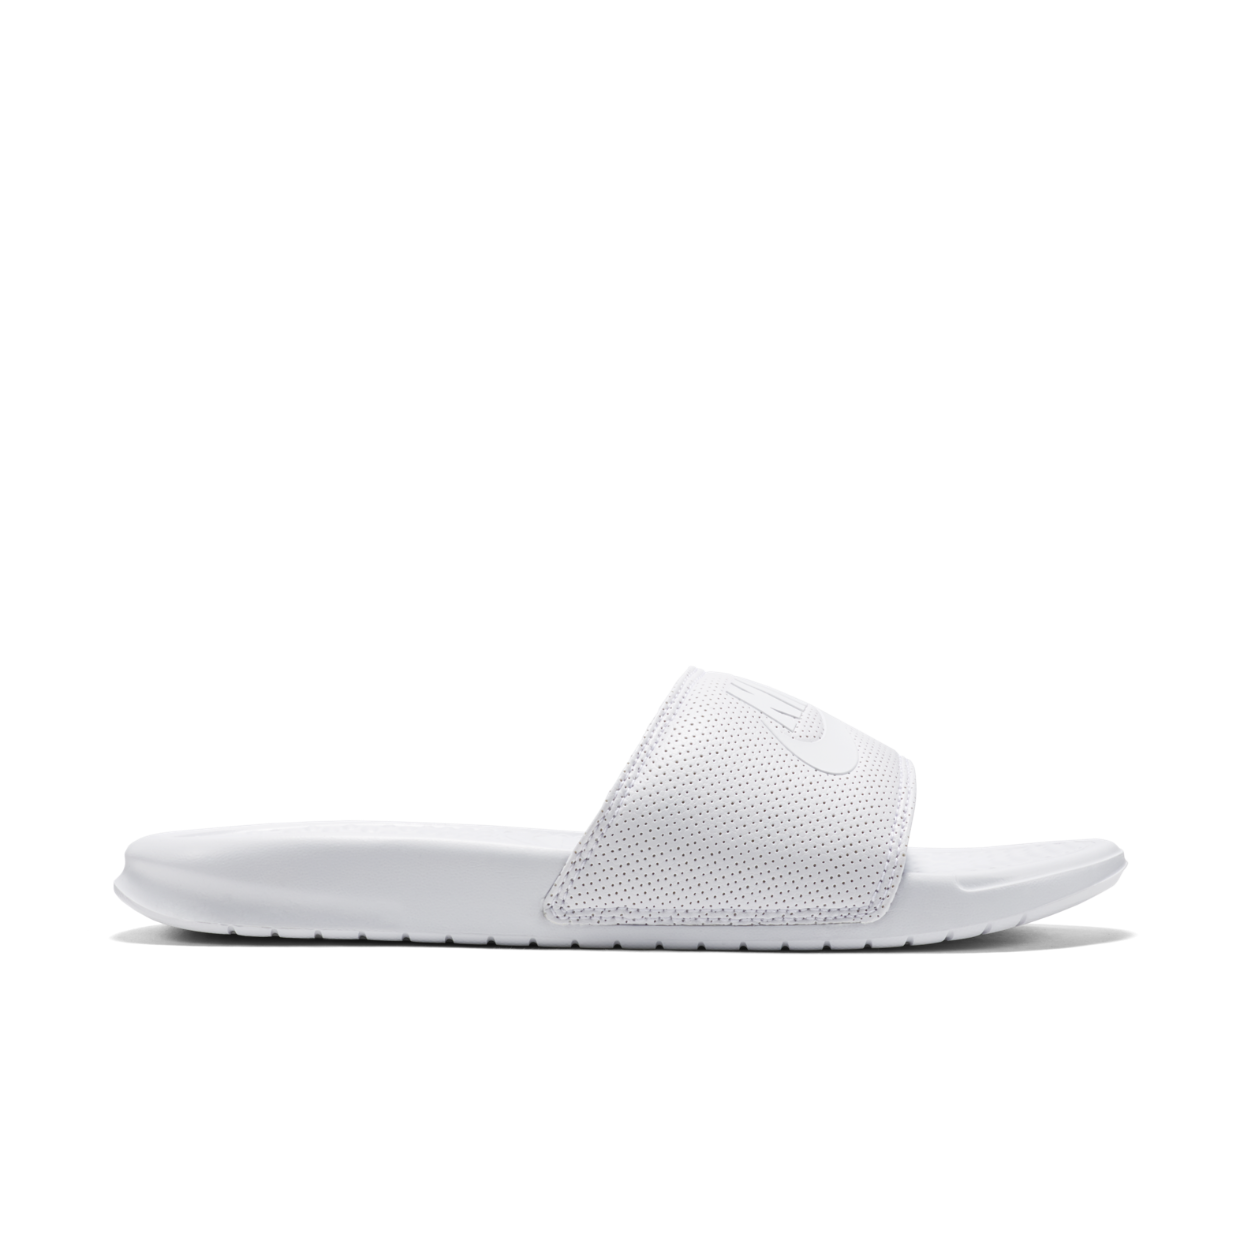 "Nike Benassi Just Do It, $40; <a href=""http://store.nike.com/us/en_us/pd/benassi-just-do-it-slide/pid-10293367/pgid-10937475"">nike.com</a>"